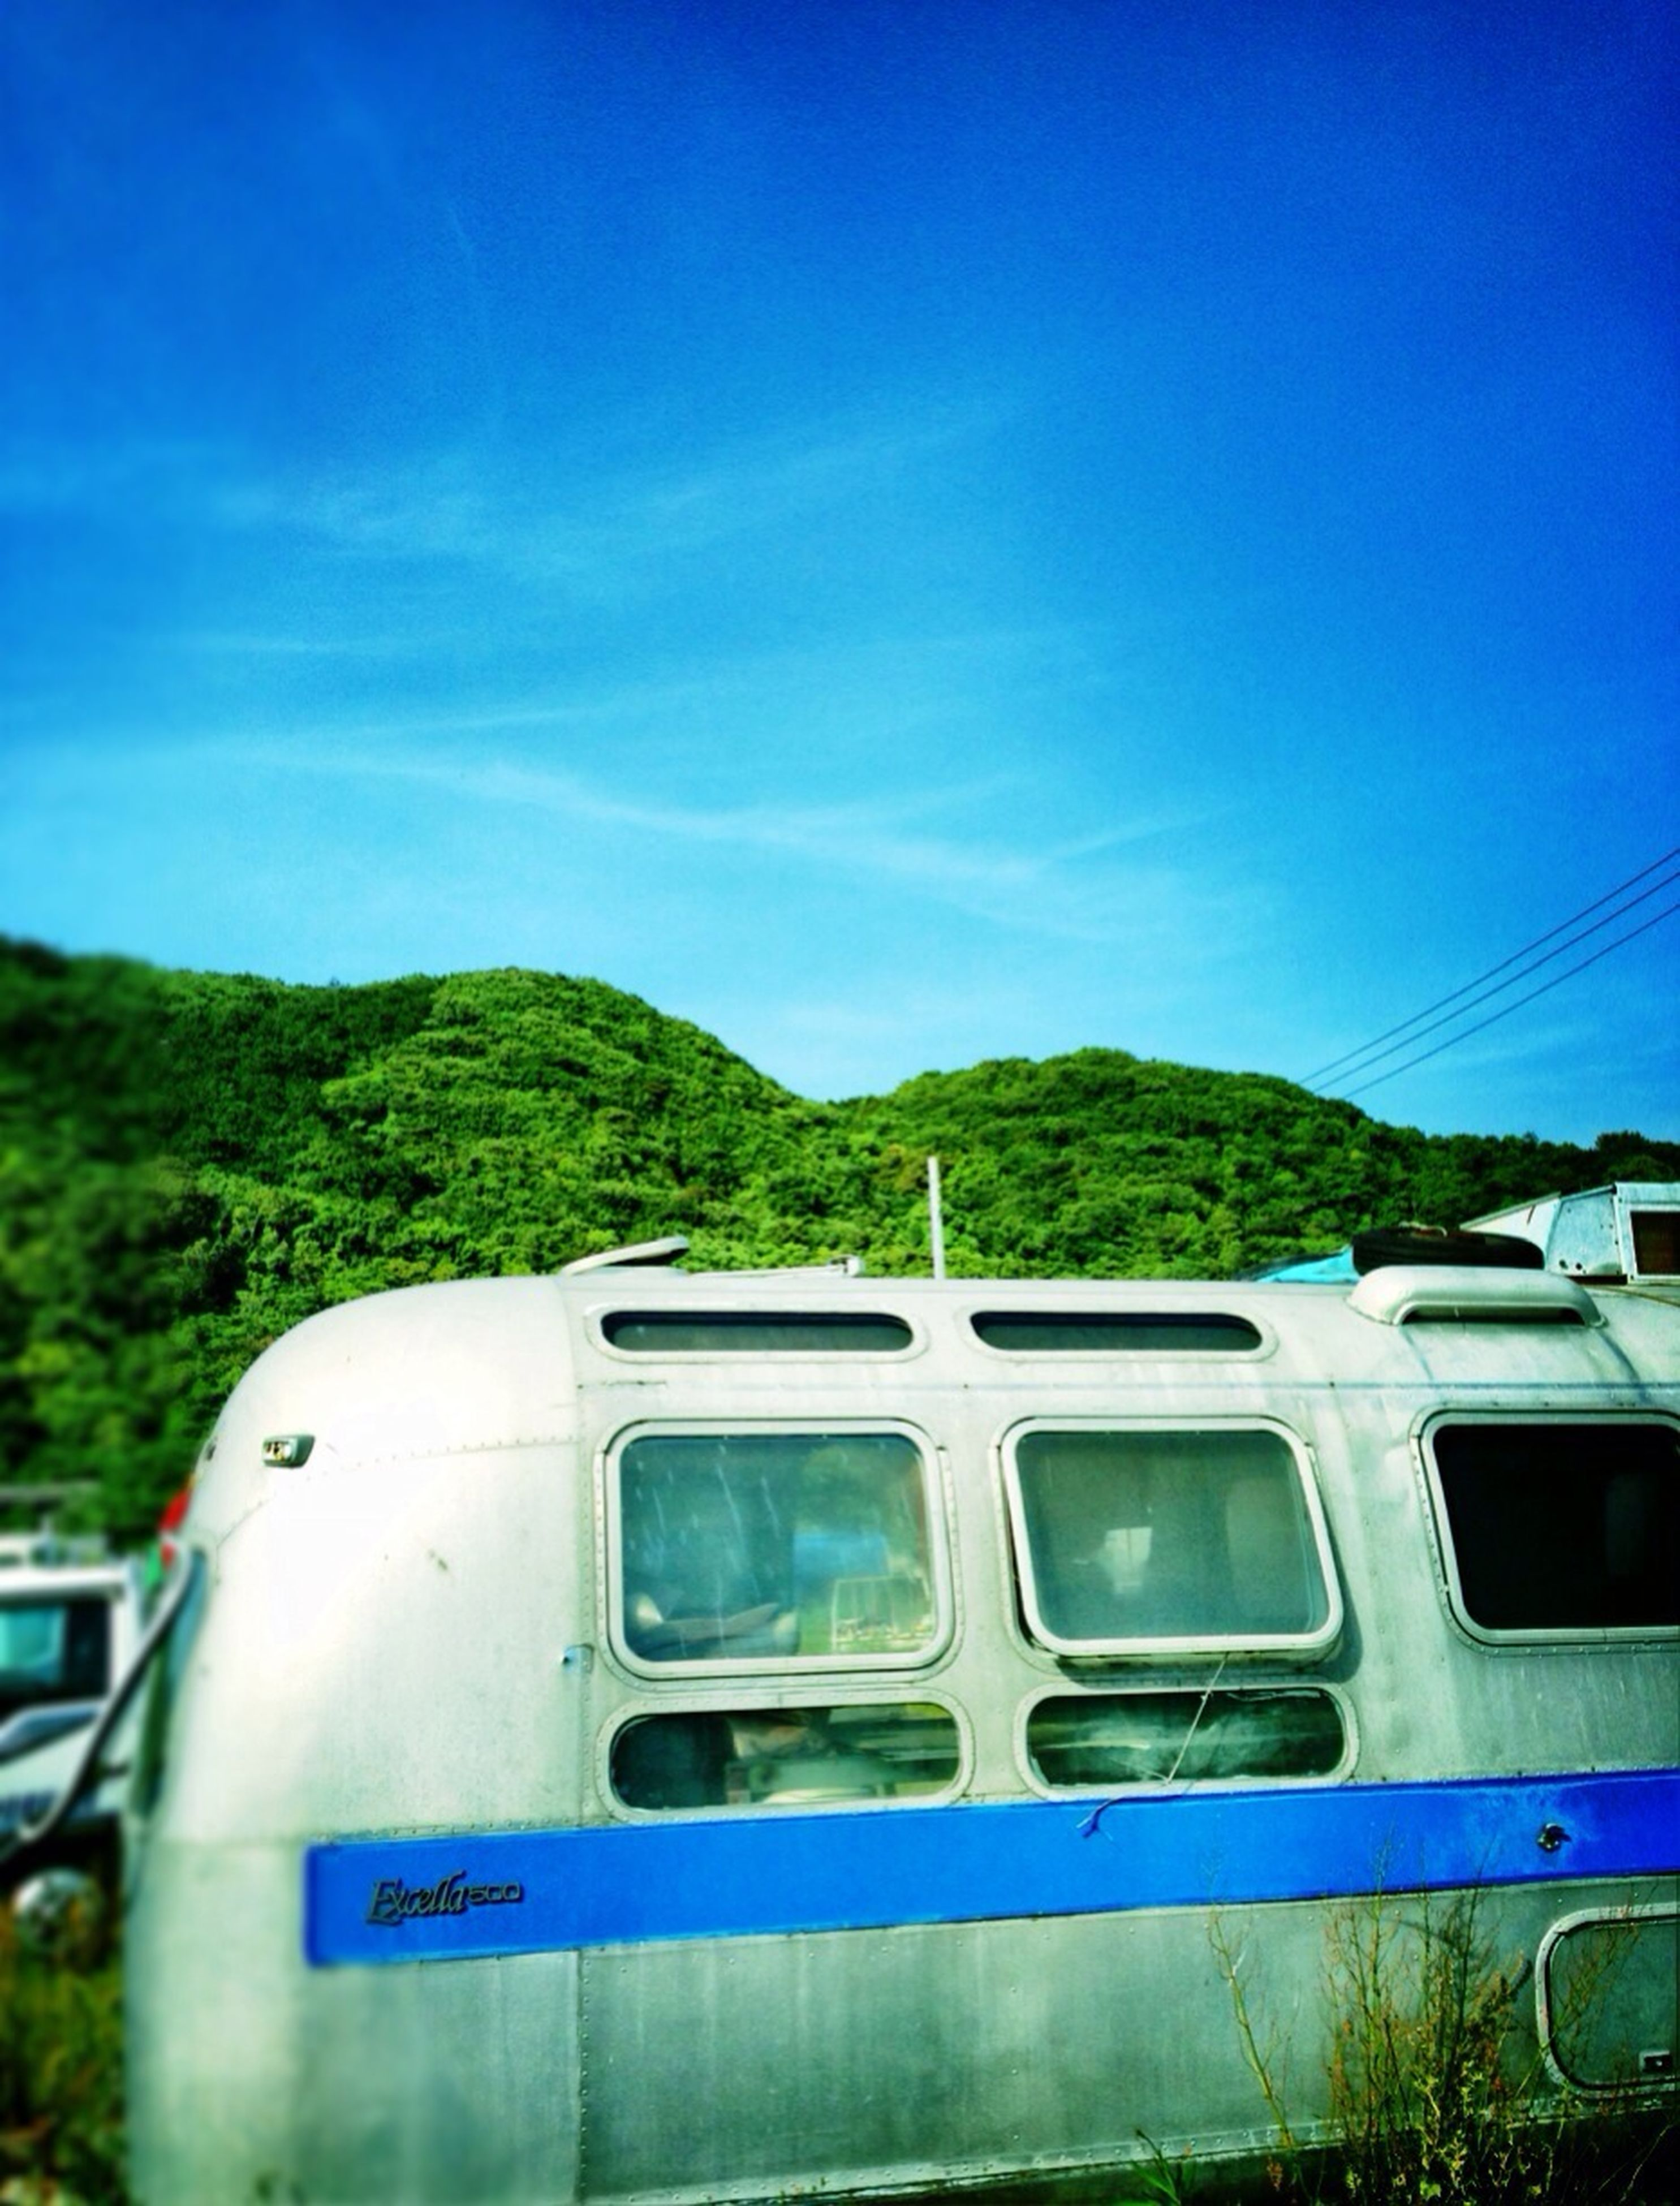 blue, transportation, mountain, mode of transport, clear sky, sky, day, land vehicle, nature, tree, rail transportation, outdoors, train - vehicle, no people, public transportation, travel, built structure, car, copy space, railroad track